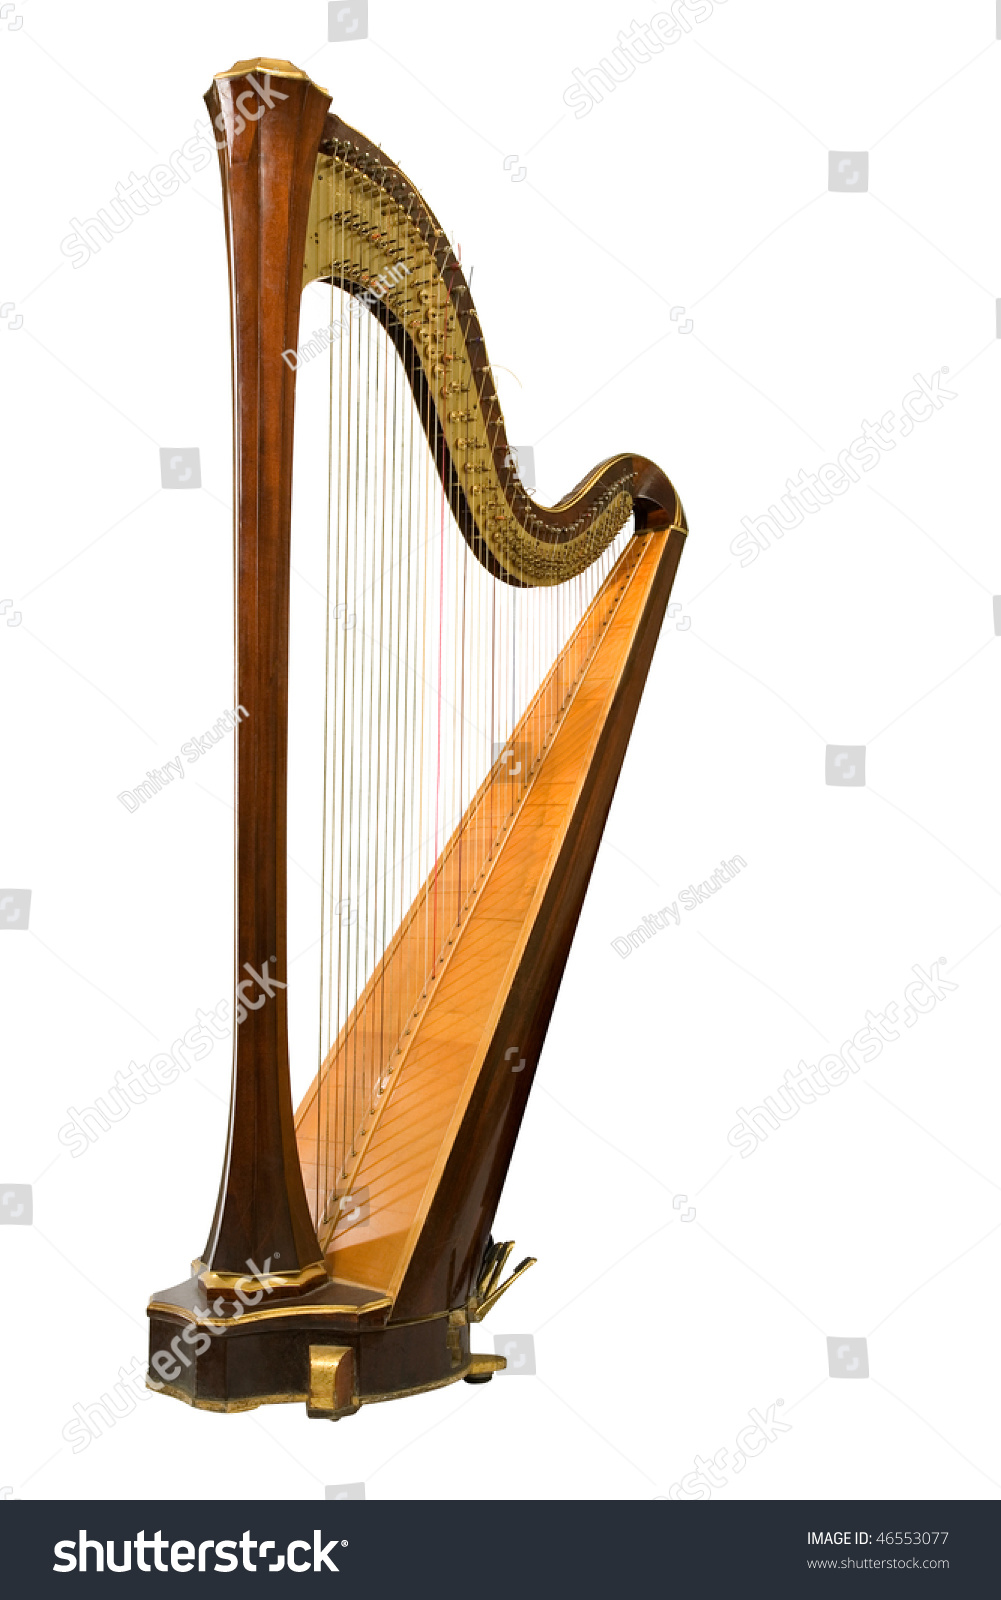 Classical Musical Instrument Harp On White Stock Photo ...